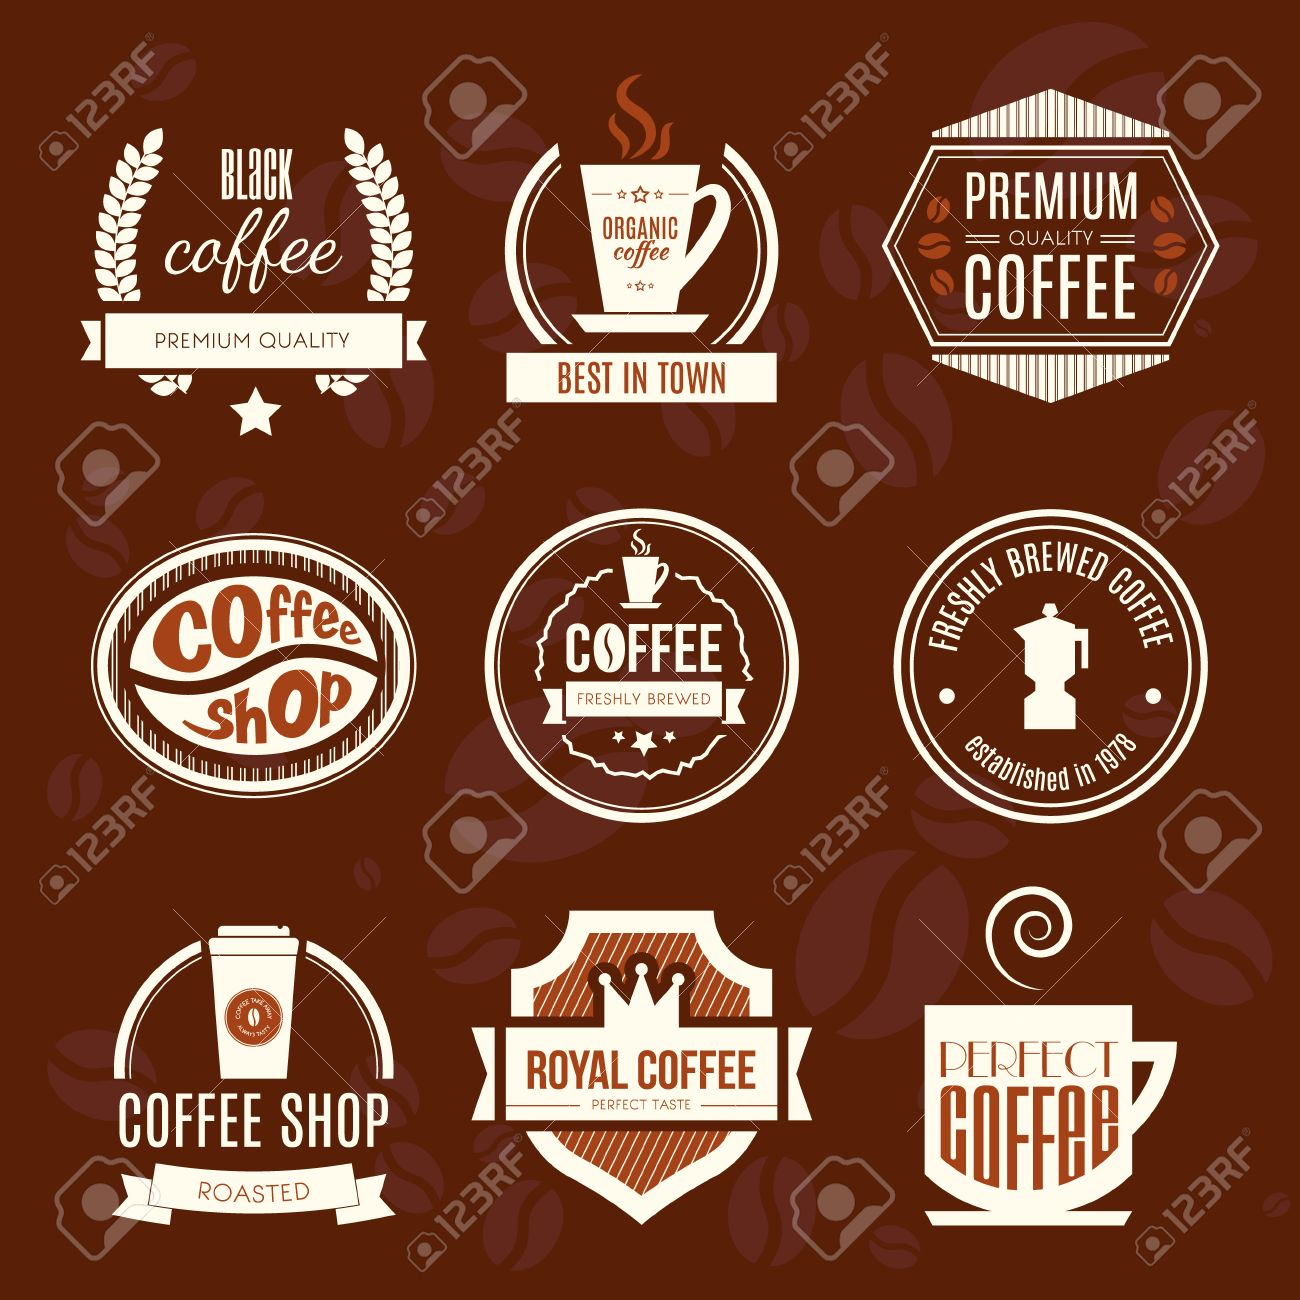 Vector Set Of Coffee Shop Logos Restaurant Or Bar Logotype Design Royalty Free Cliparts Vectors And Stock Illustration Image 36182597